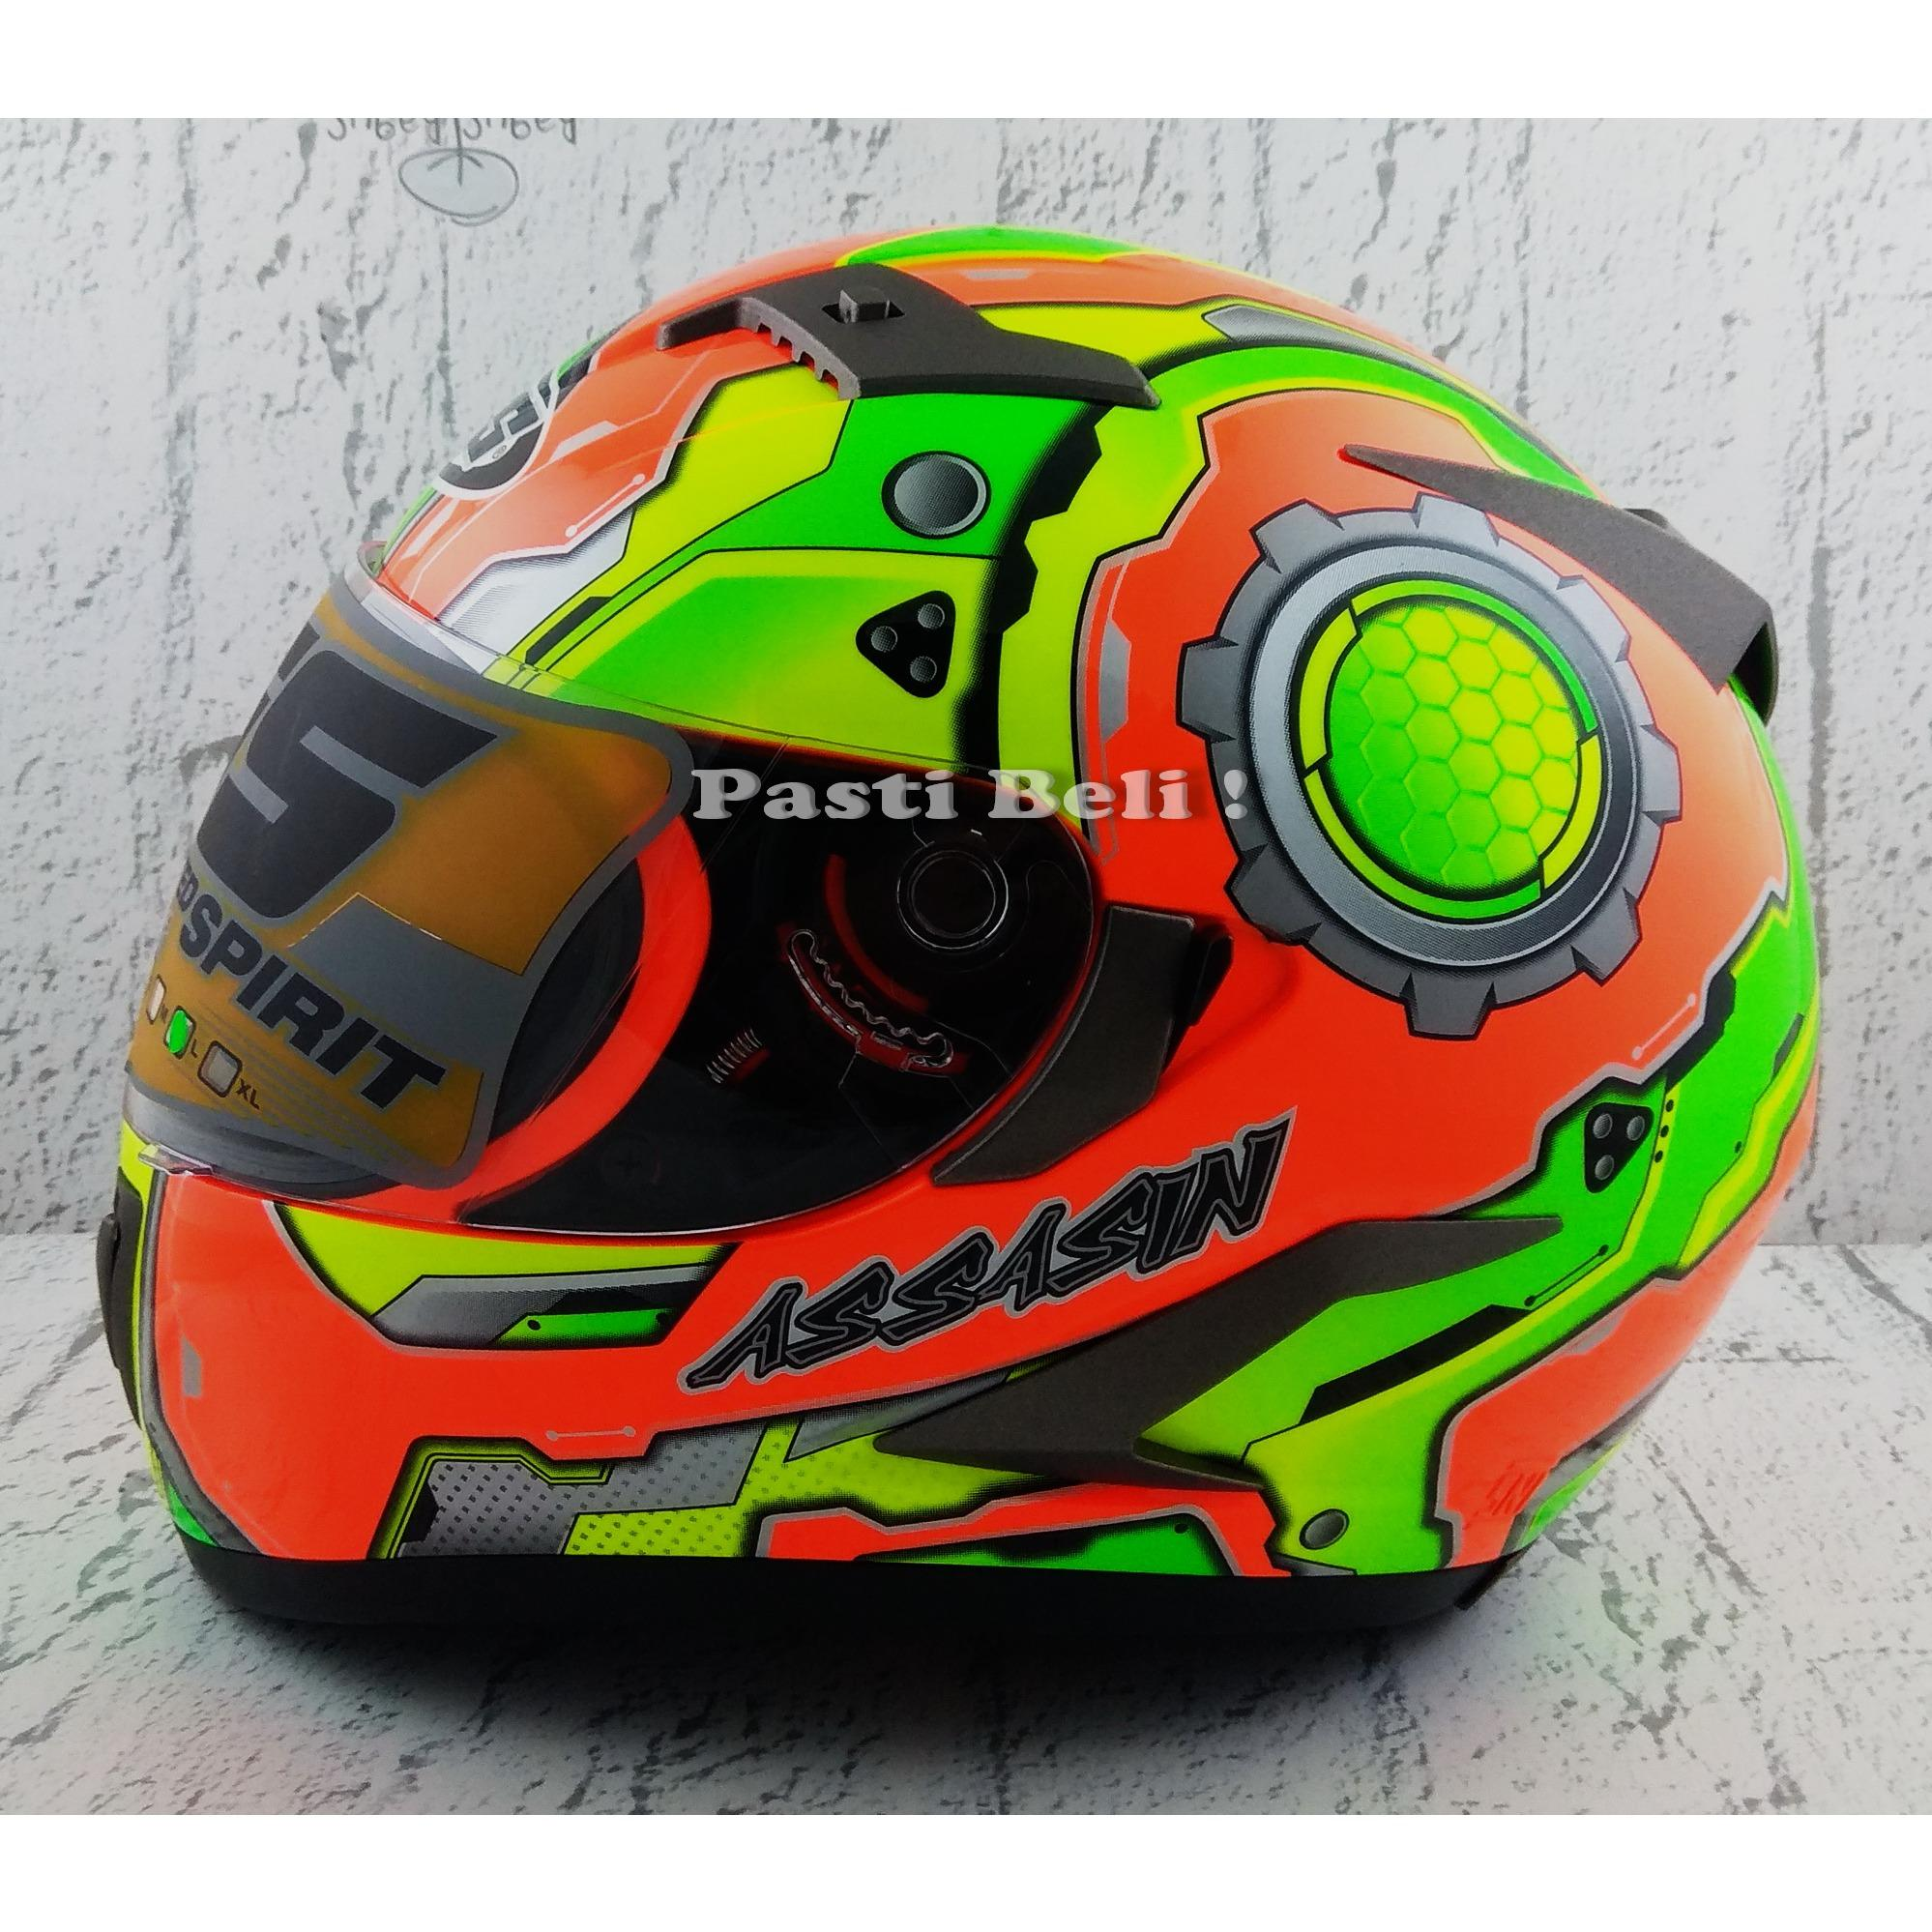 Mds Helm Full Face Motor Cross Super Pro Supermoto Double Visor Moto Motif Pagar 2 Yellow Fluo Motocross Semi Source Review